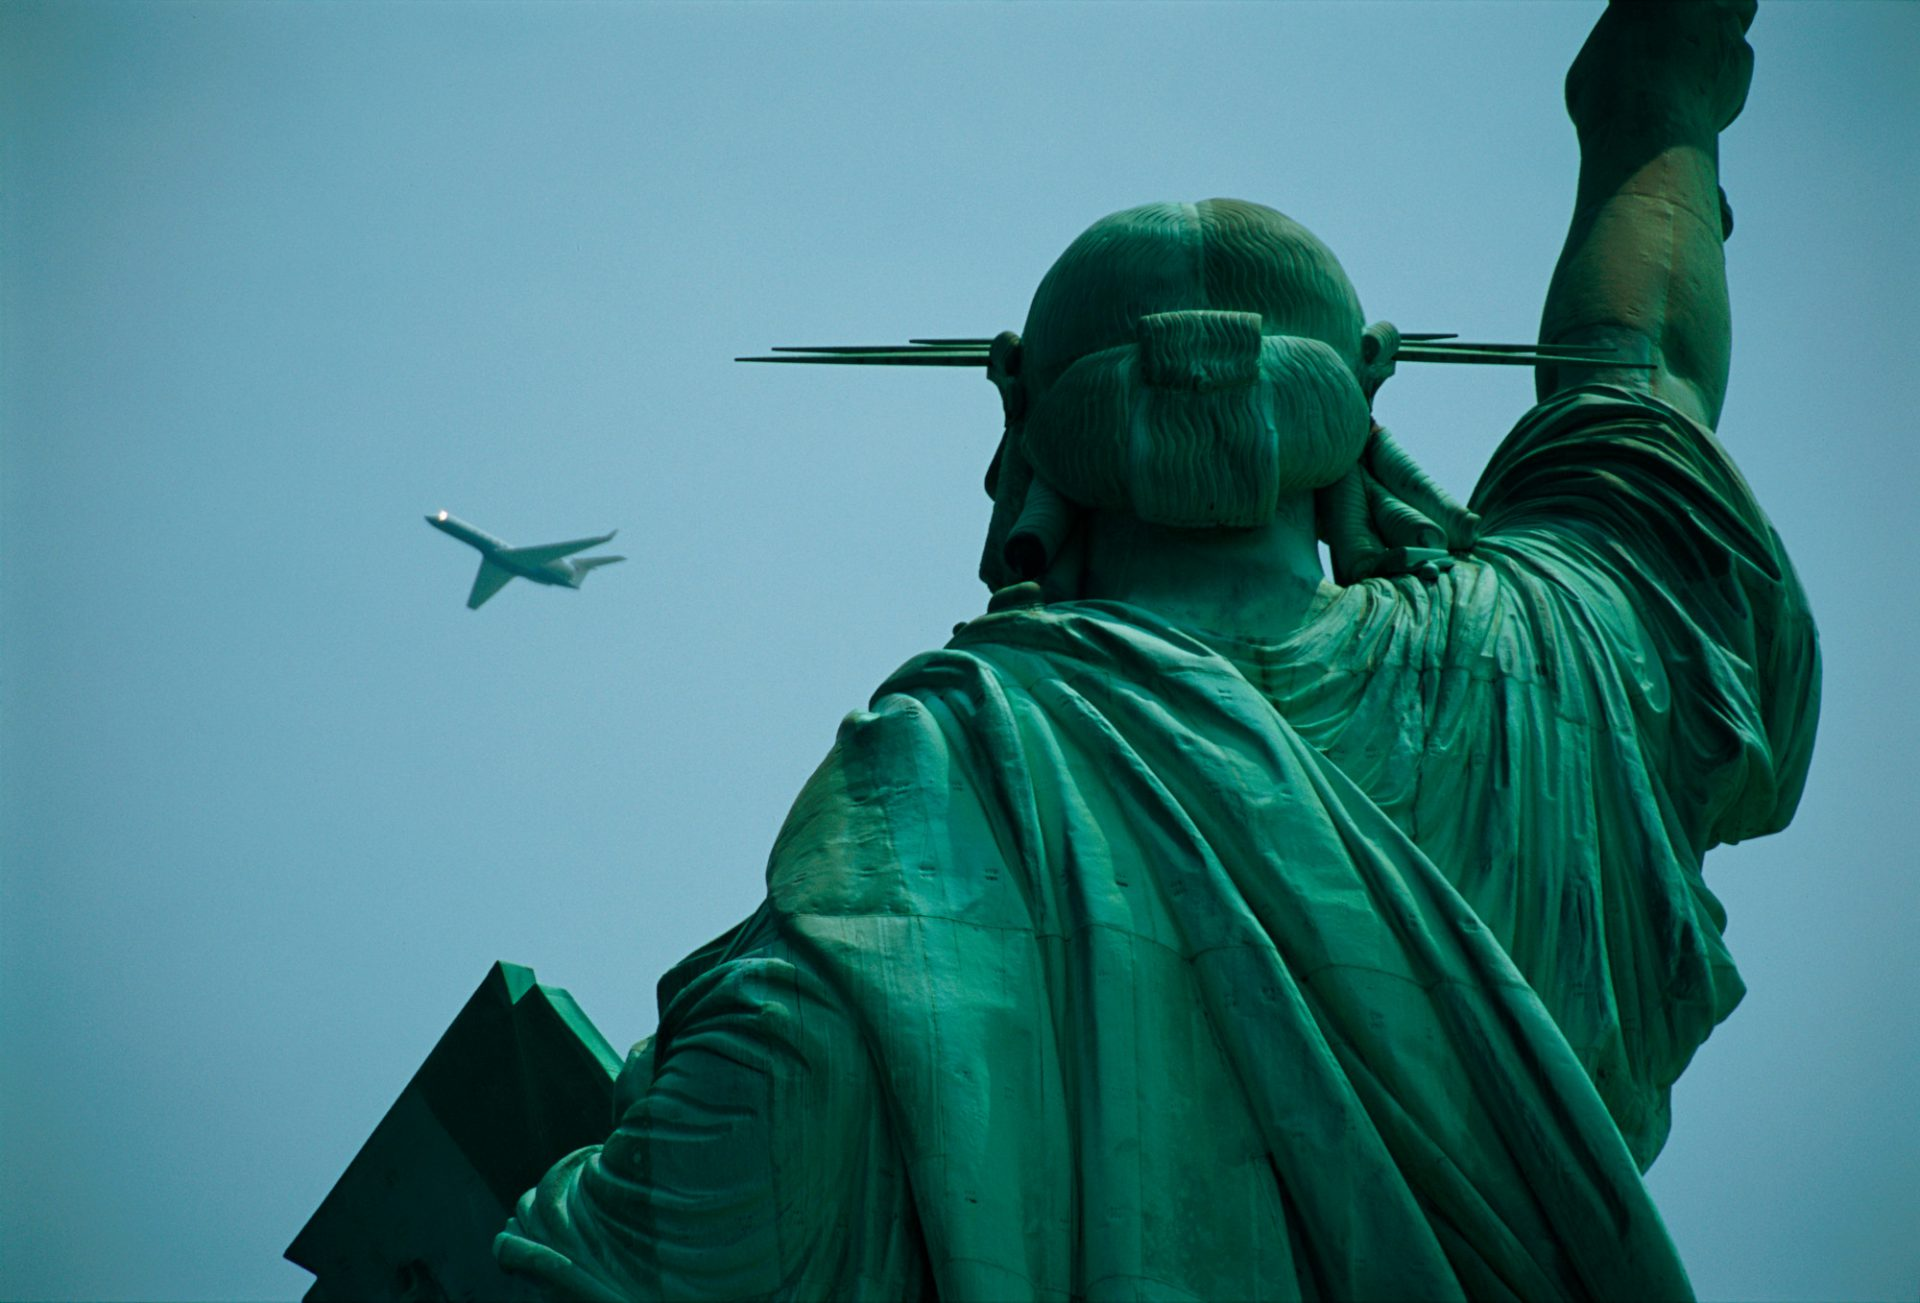 Photo: An airplane flies near the Statue of Liberty.